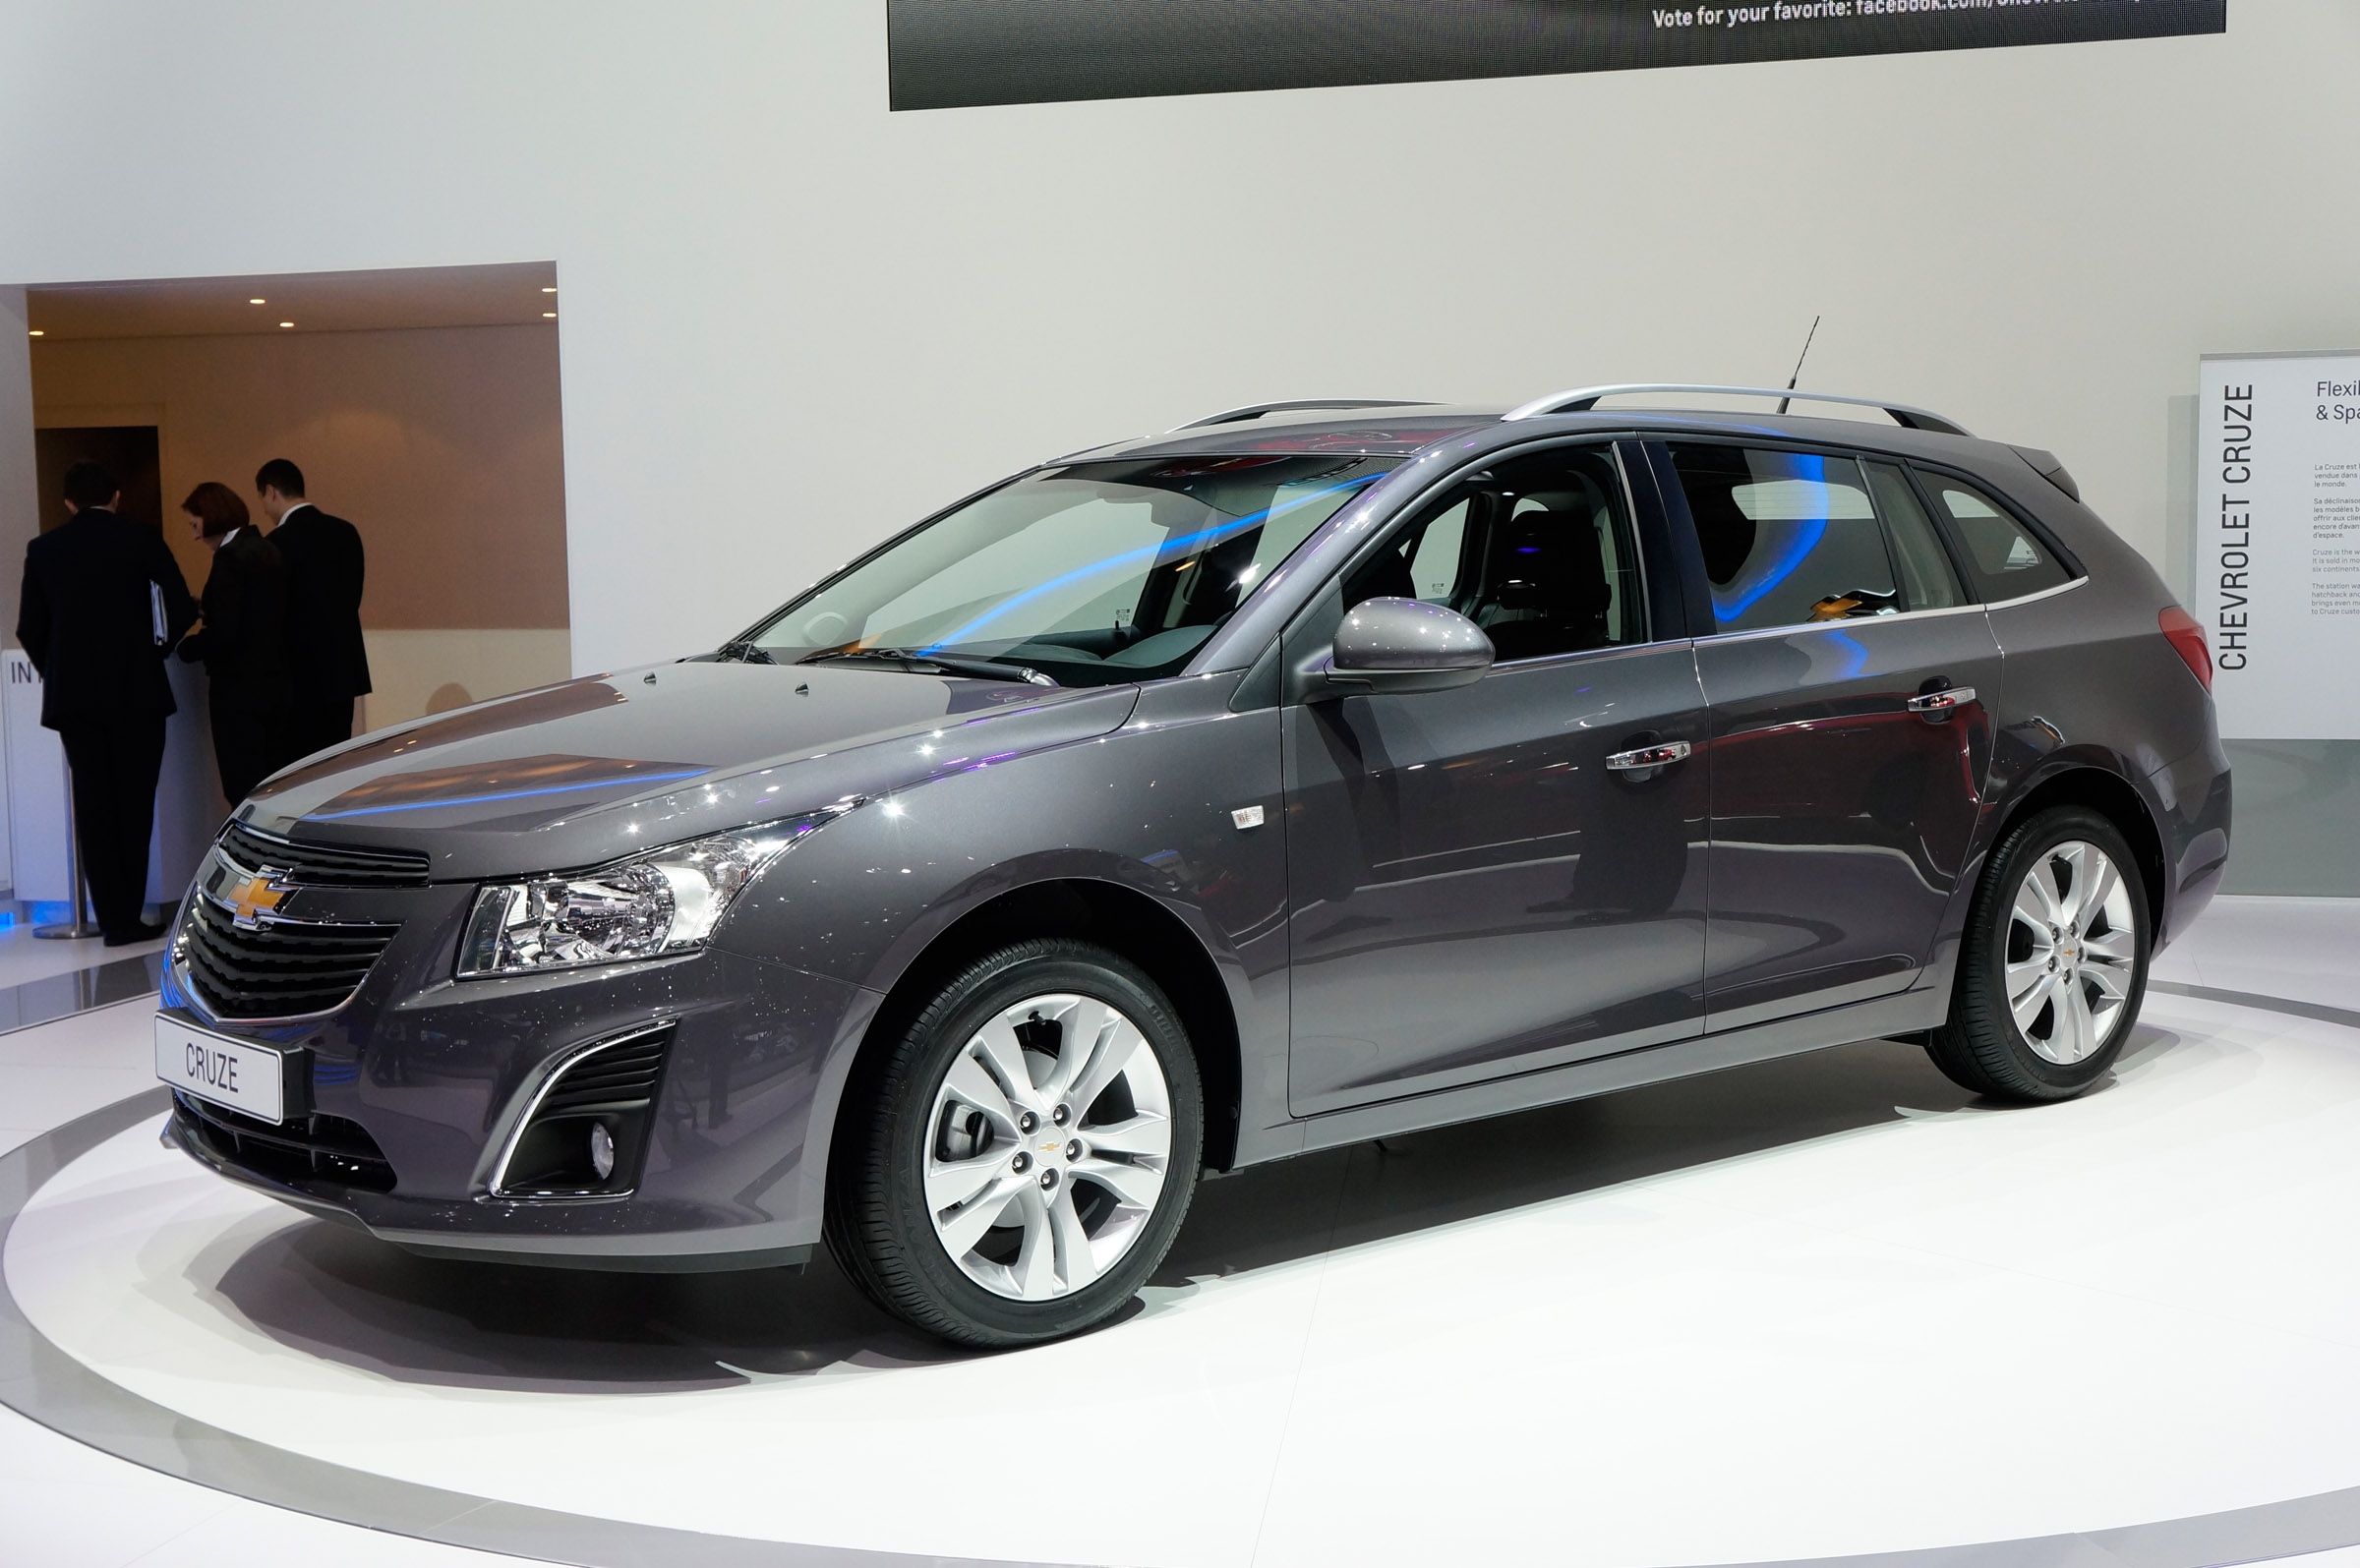 2012 geneva motor show chevrolet cruze station wagon. Black Bedroom Furniture Sets. Home Design Ideas